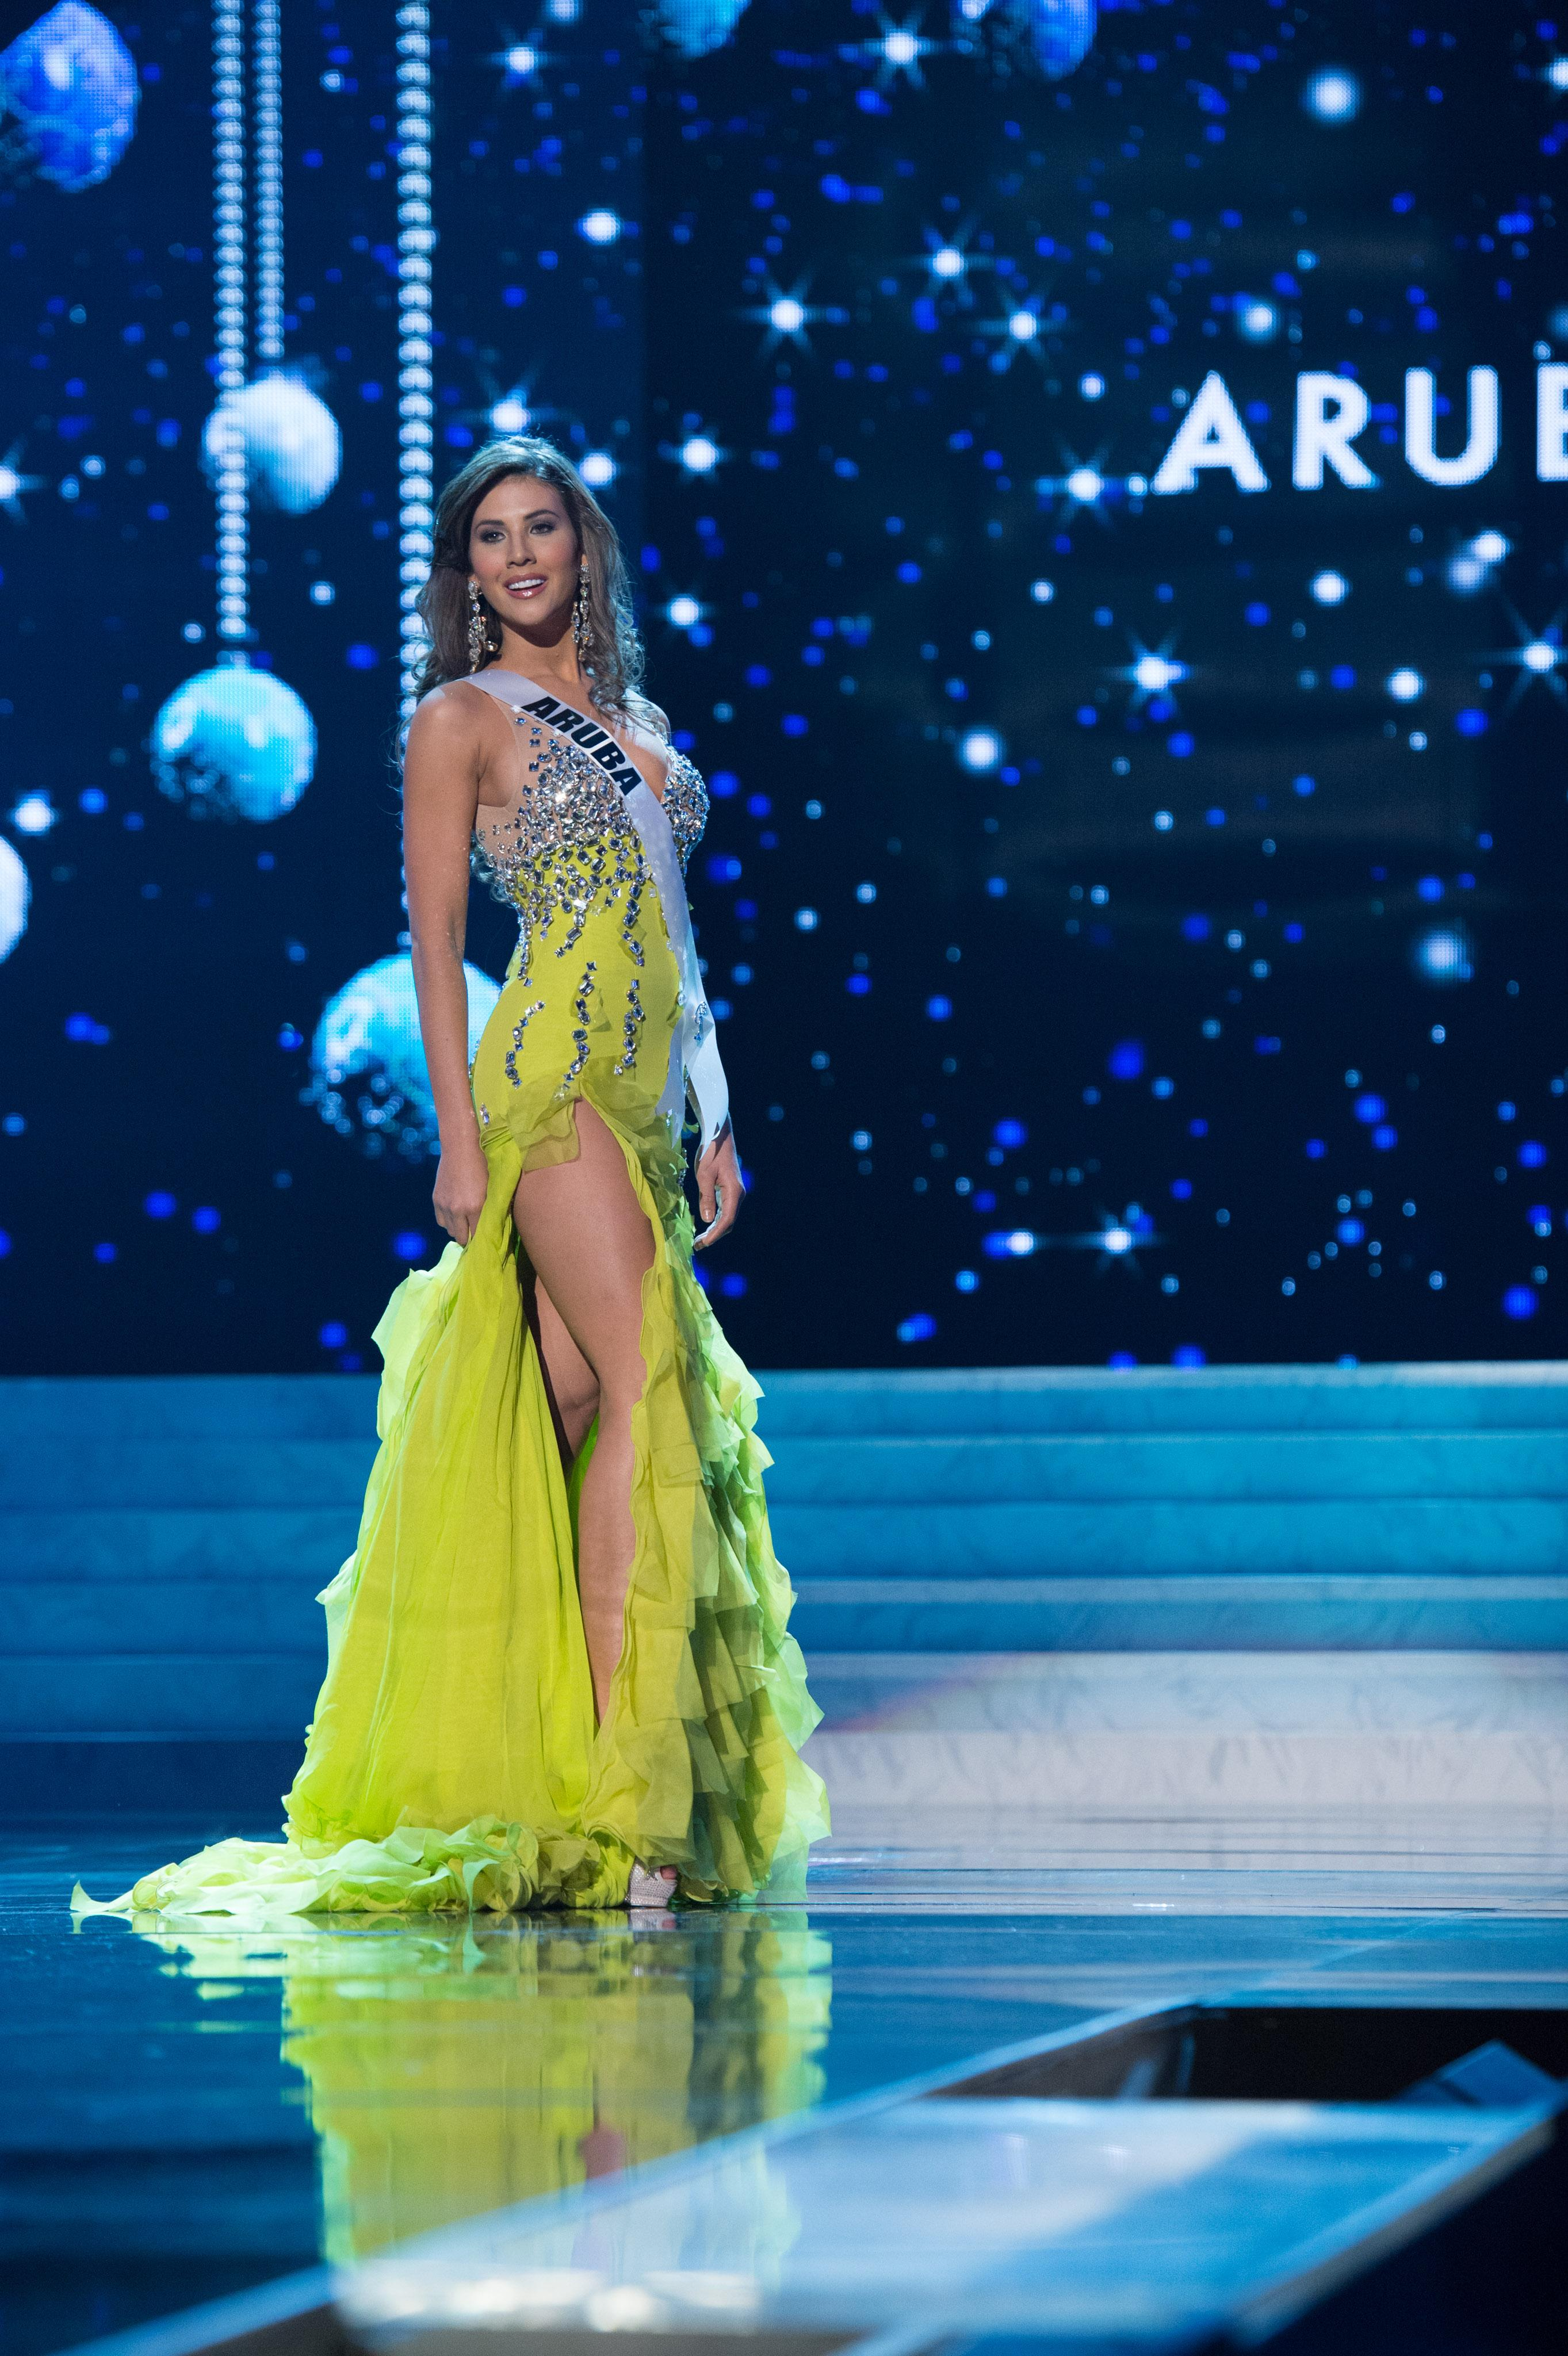 Miss Universe 2012 Meet 89 Contestants in Evening Gown